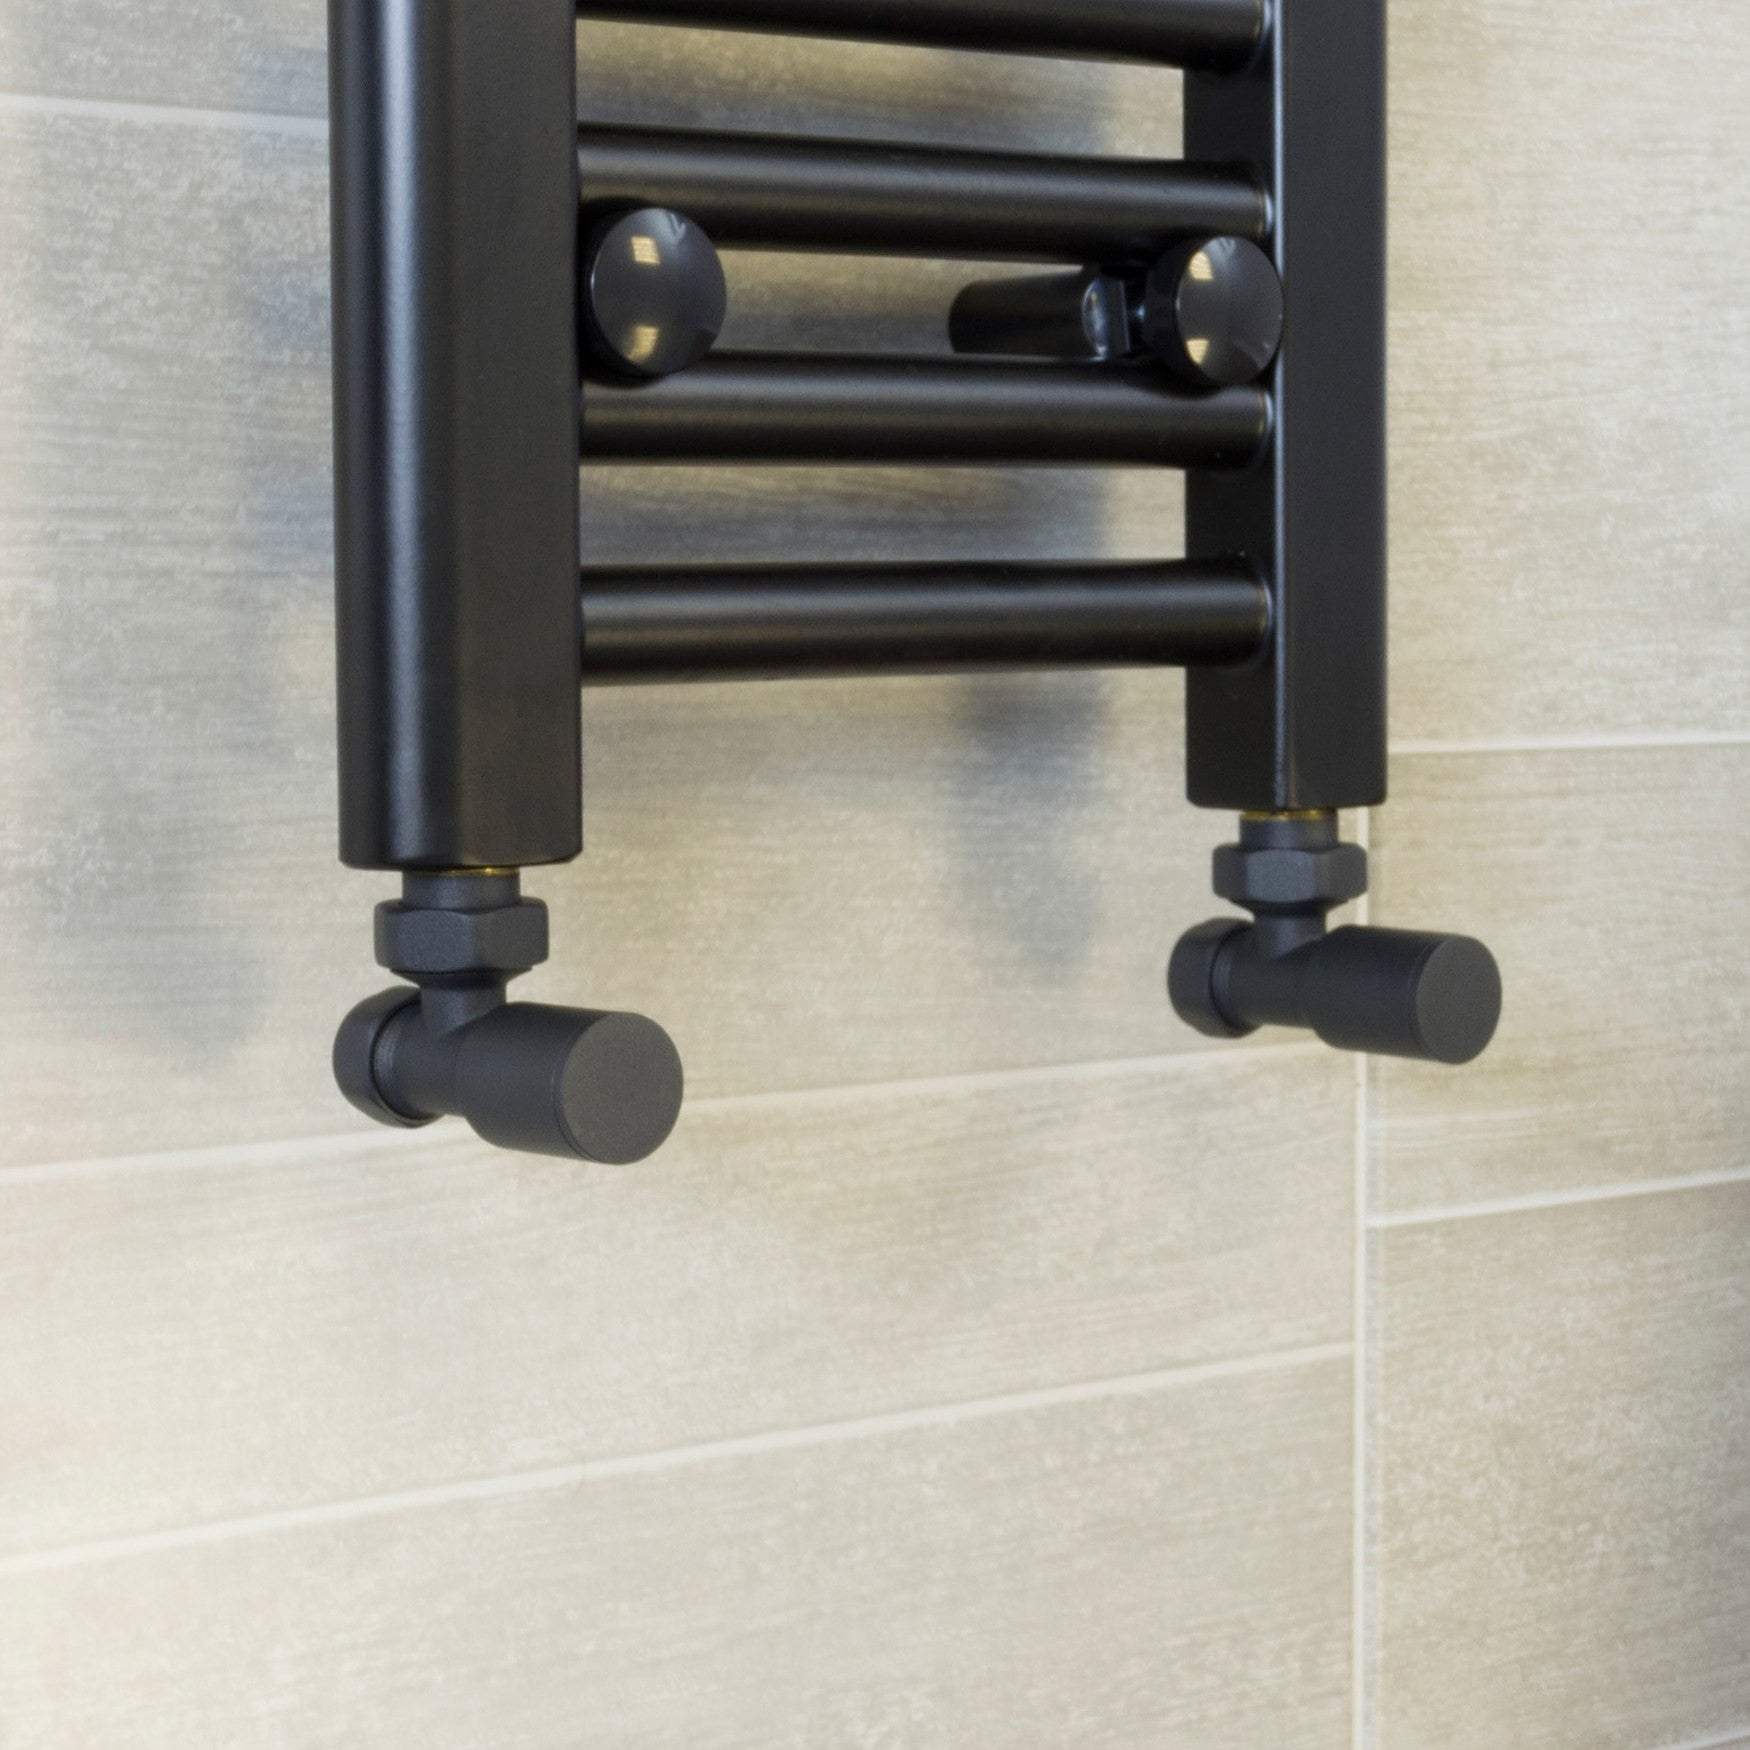 Anthracite Angled Towel Rail Radiator Valve (Pair of 2 Valves) - Elegant Radiators